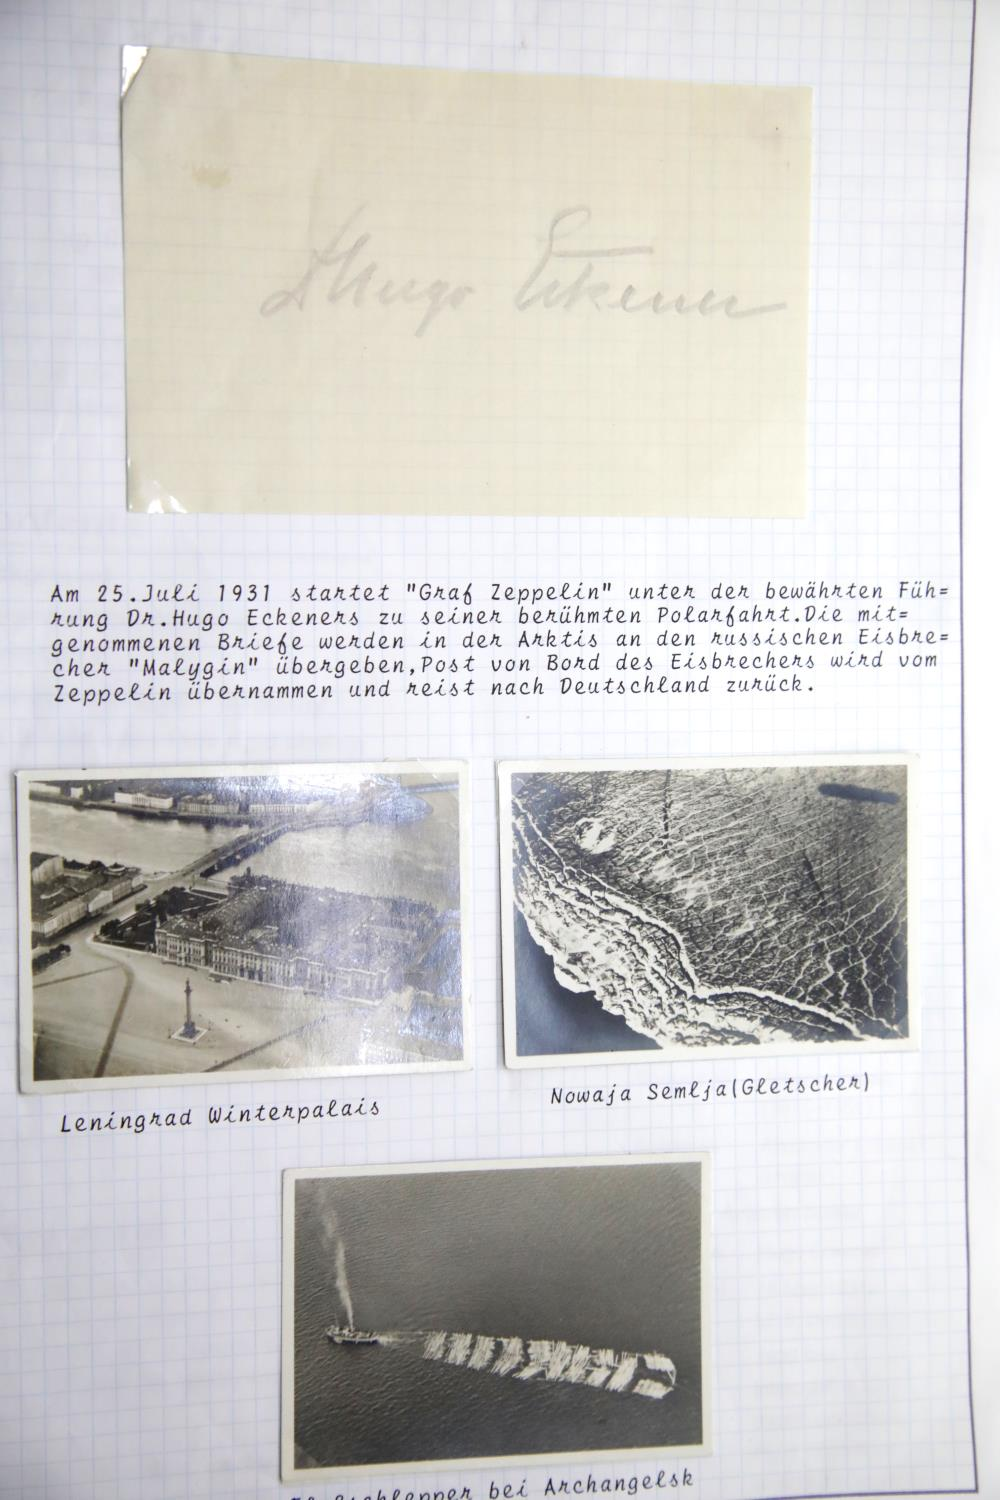 Lot 3032 - Graf Zeppelin, three aerial snapshots of Leningrad, Norwegian coast and Archangel together with